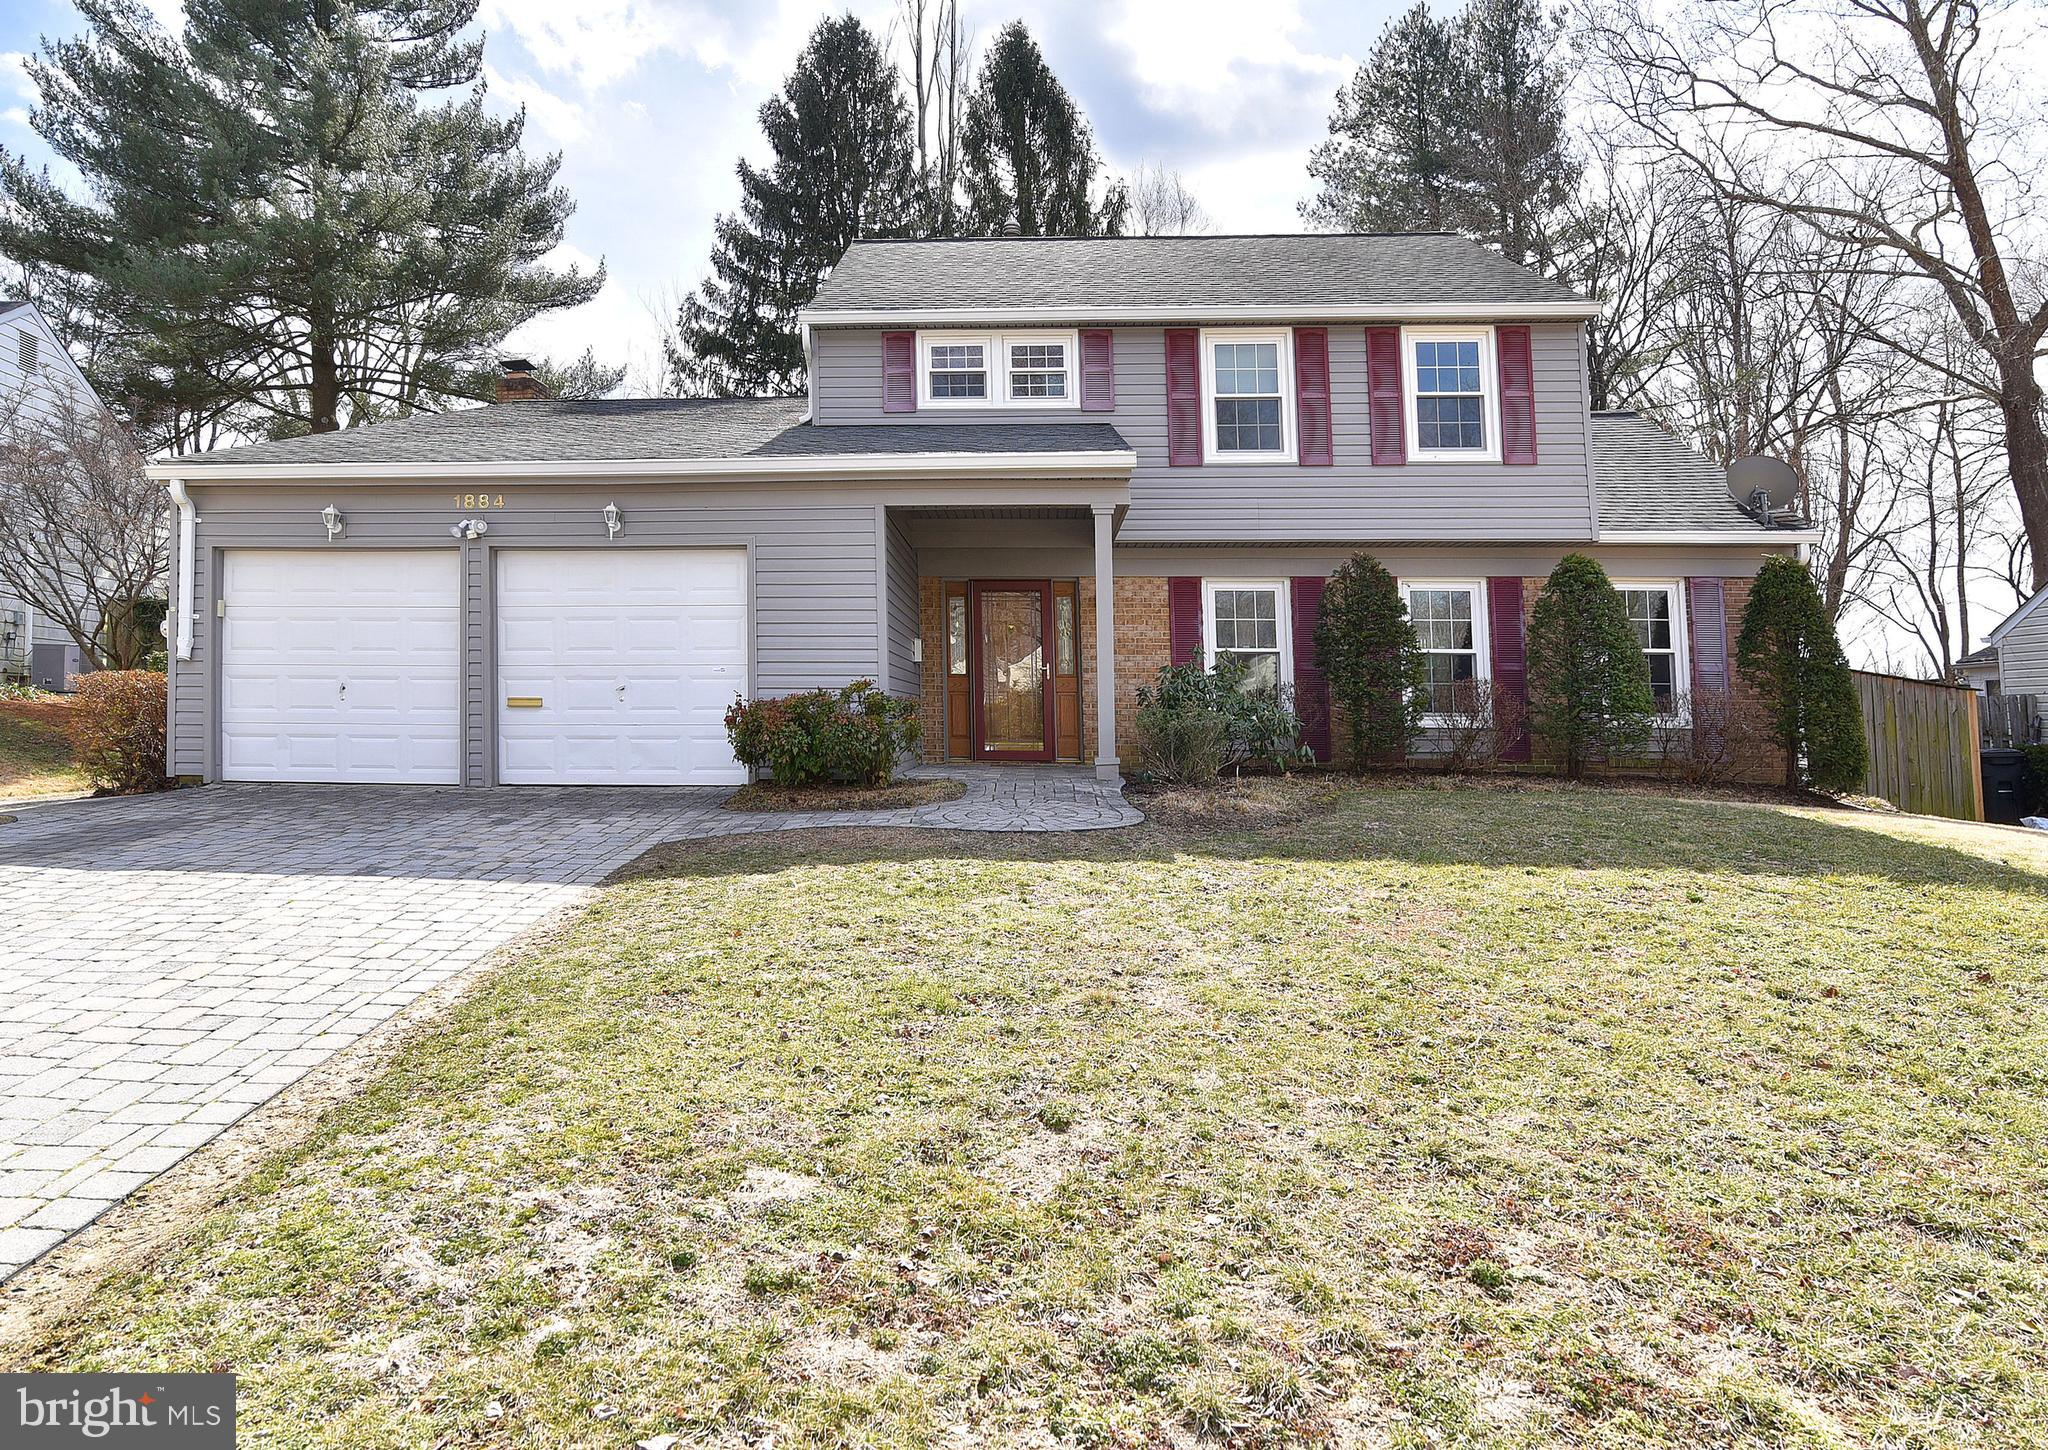 1884 HARCOURT AVENUE, CROFTON, MD 21114